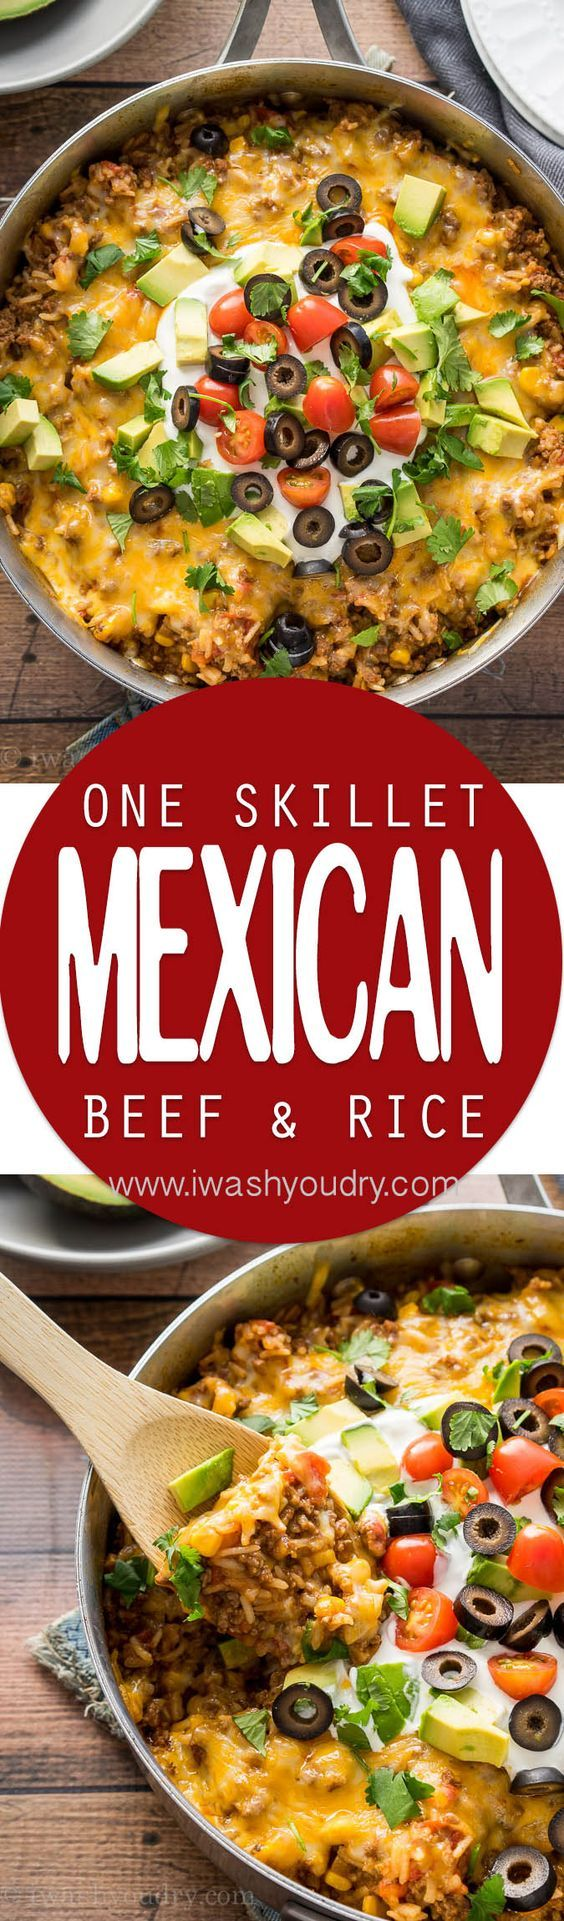 Skillets rice and skillet recipes on pinterest for Quick and easy dinner ideas with hamburger meat